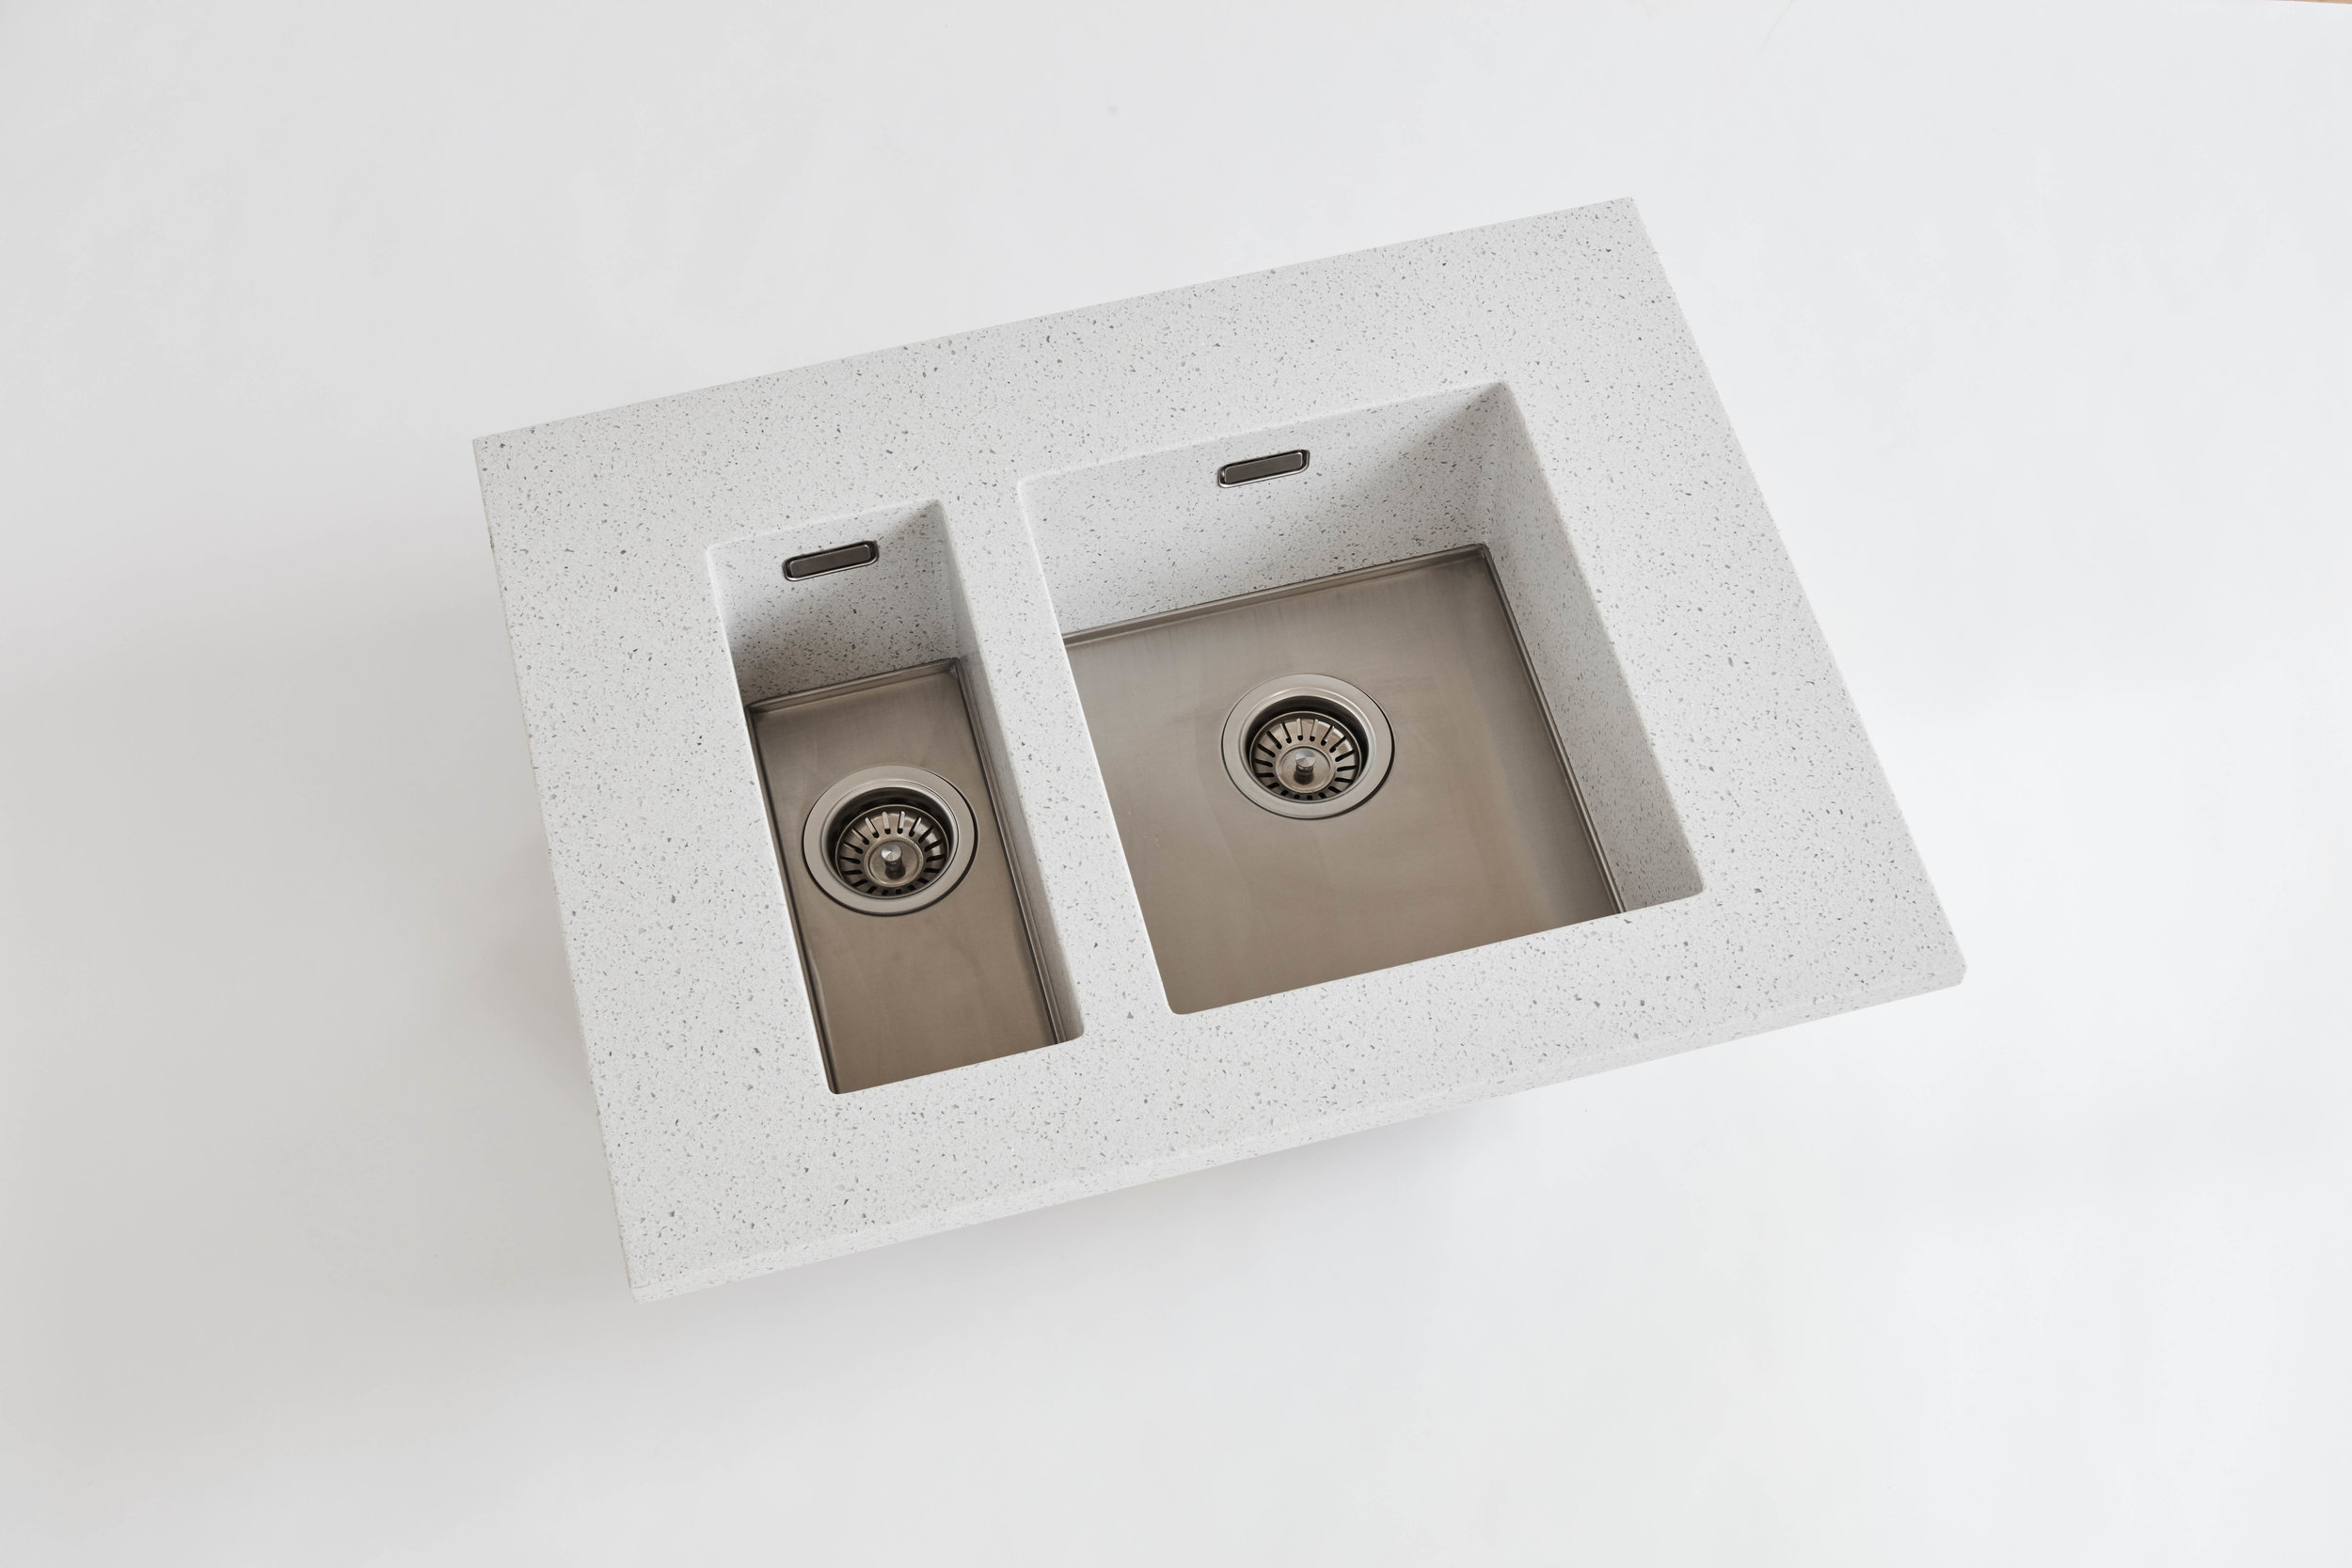 Introducing:SYNCRO - Inlay Stainless Steel Sinks